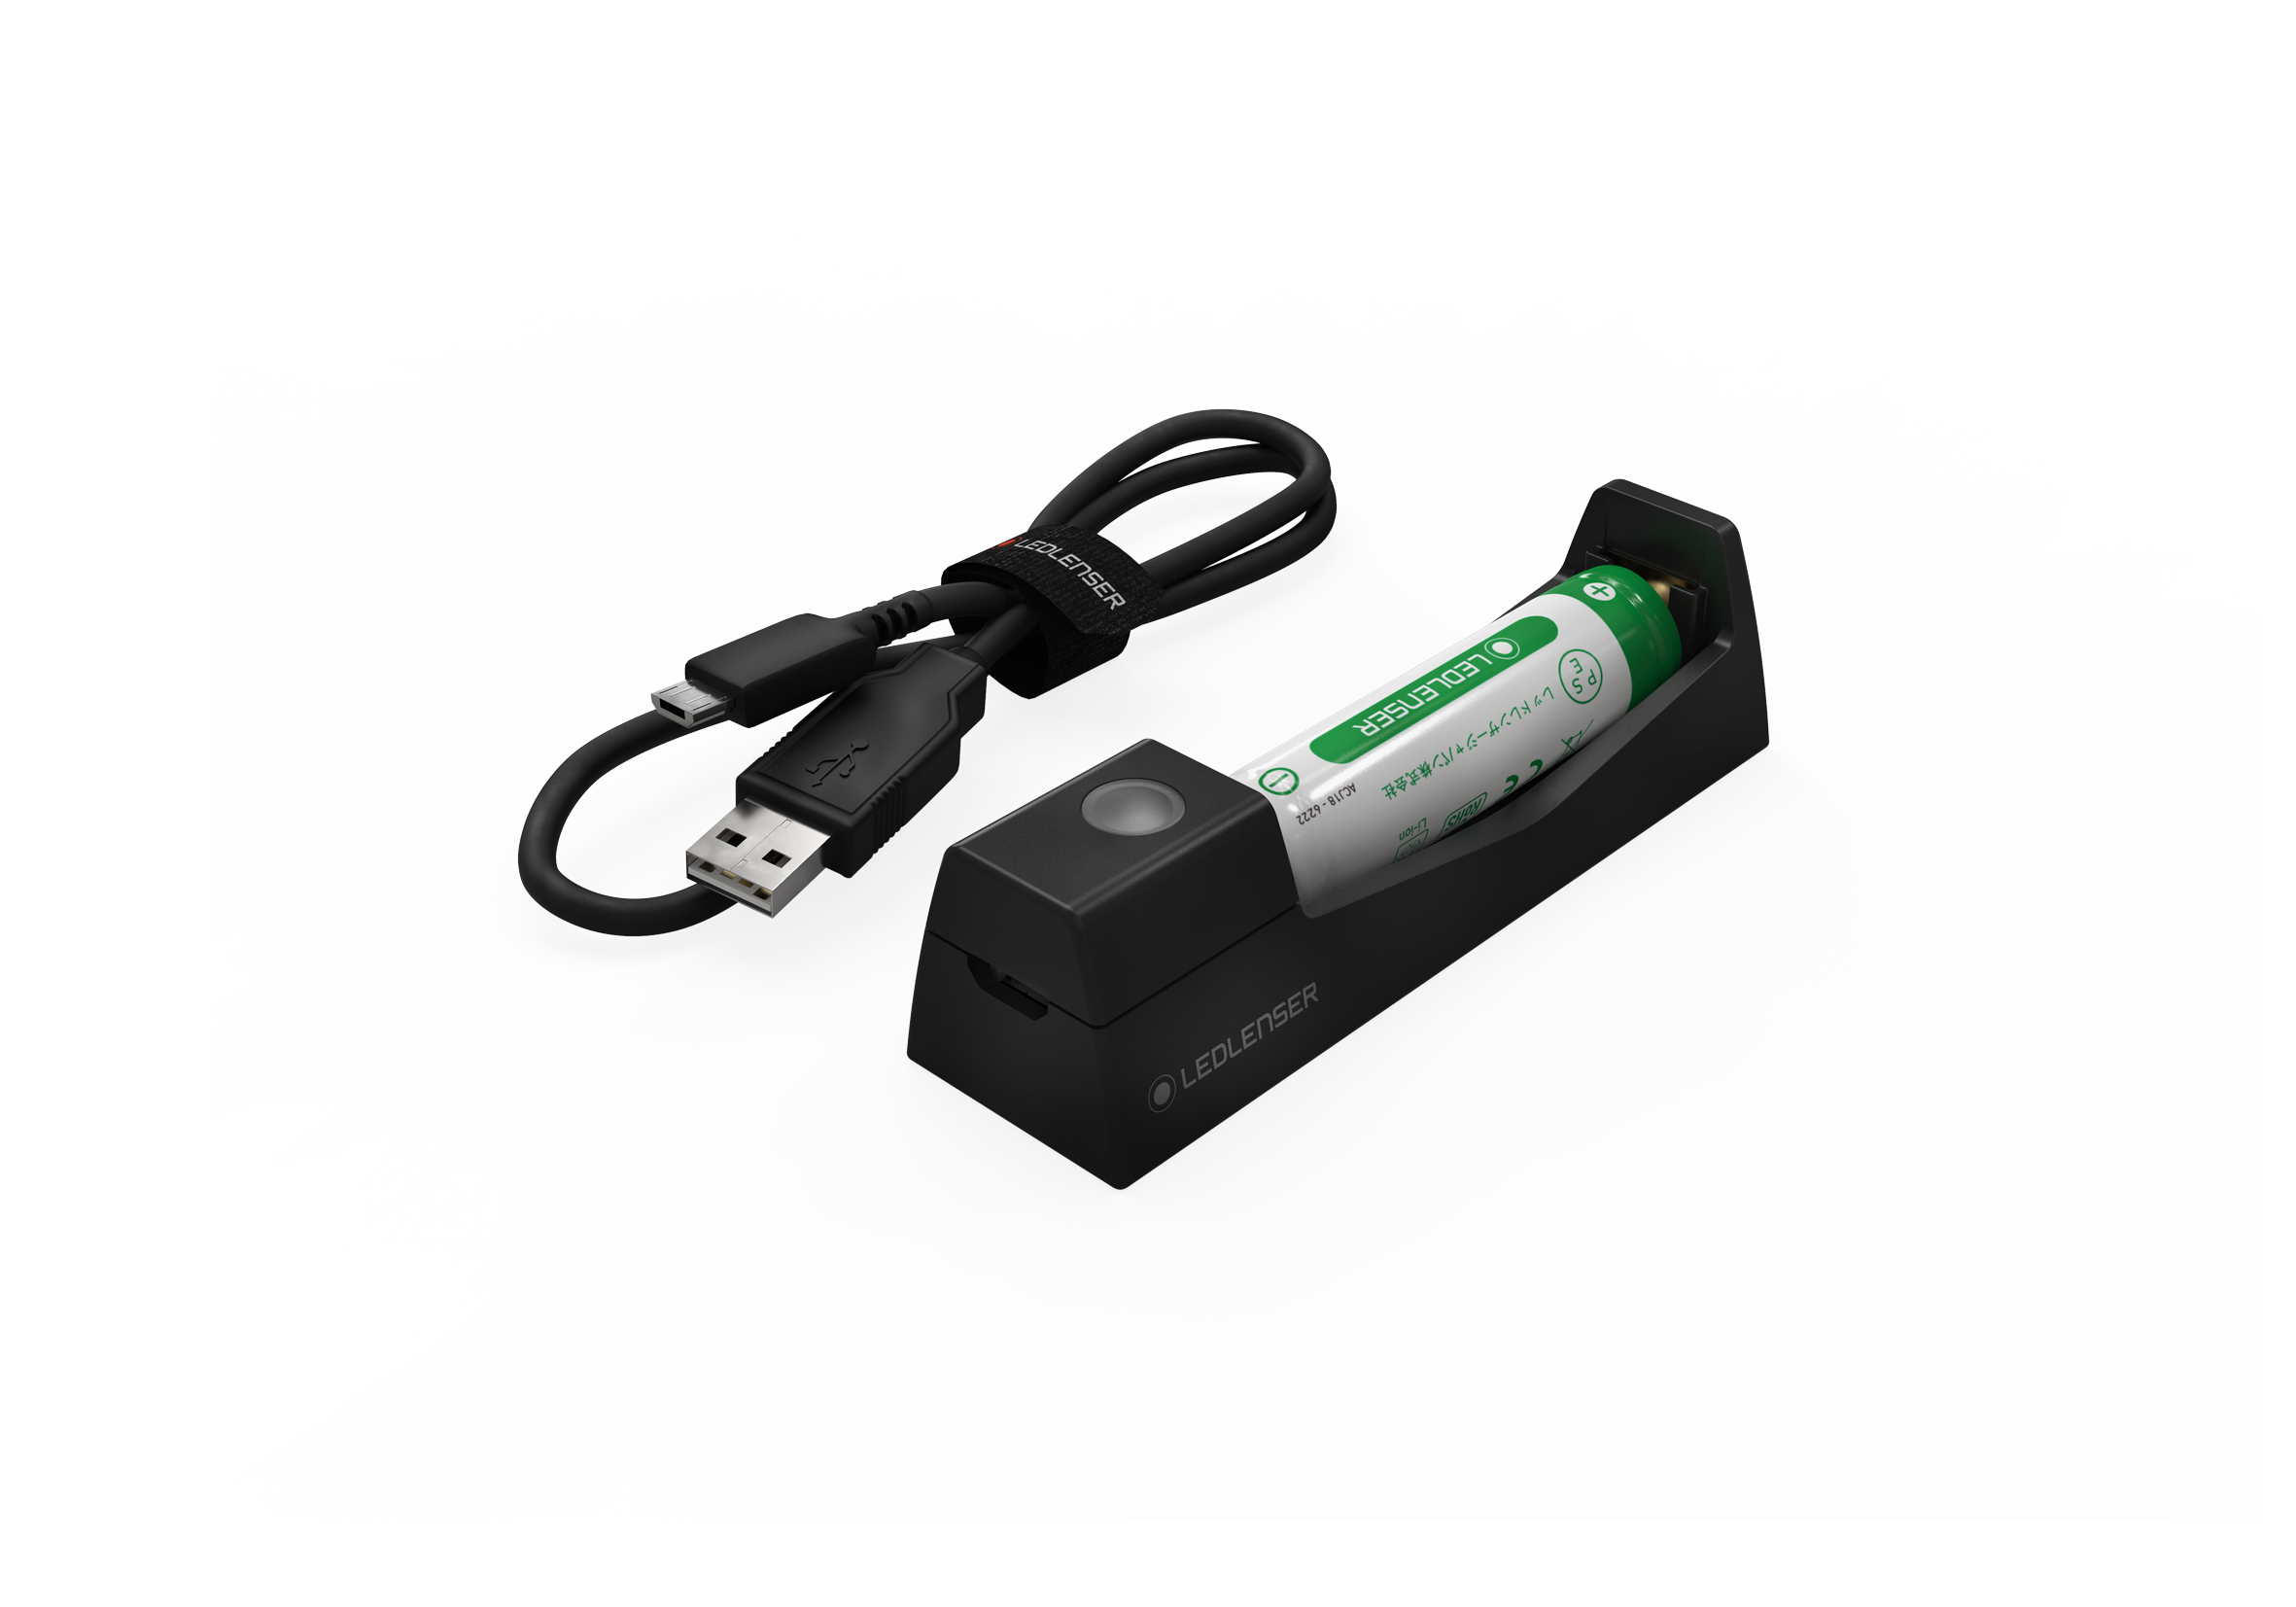 Charging station and 14500 li-ion rechargeable battery